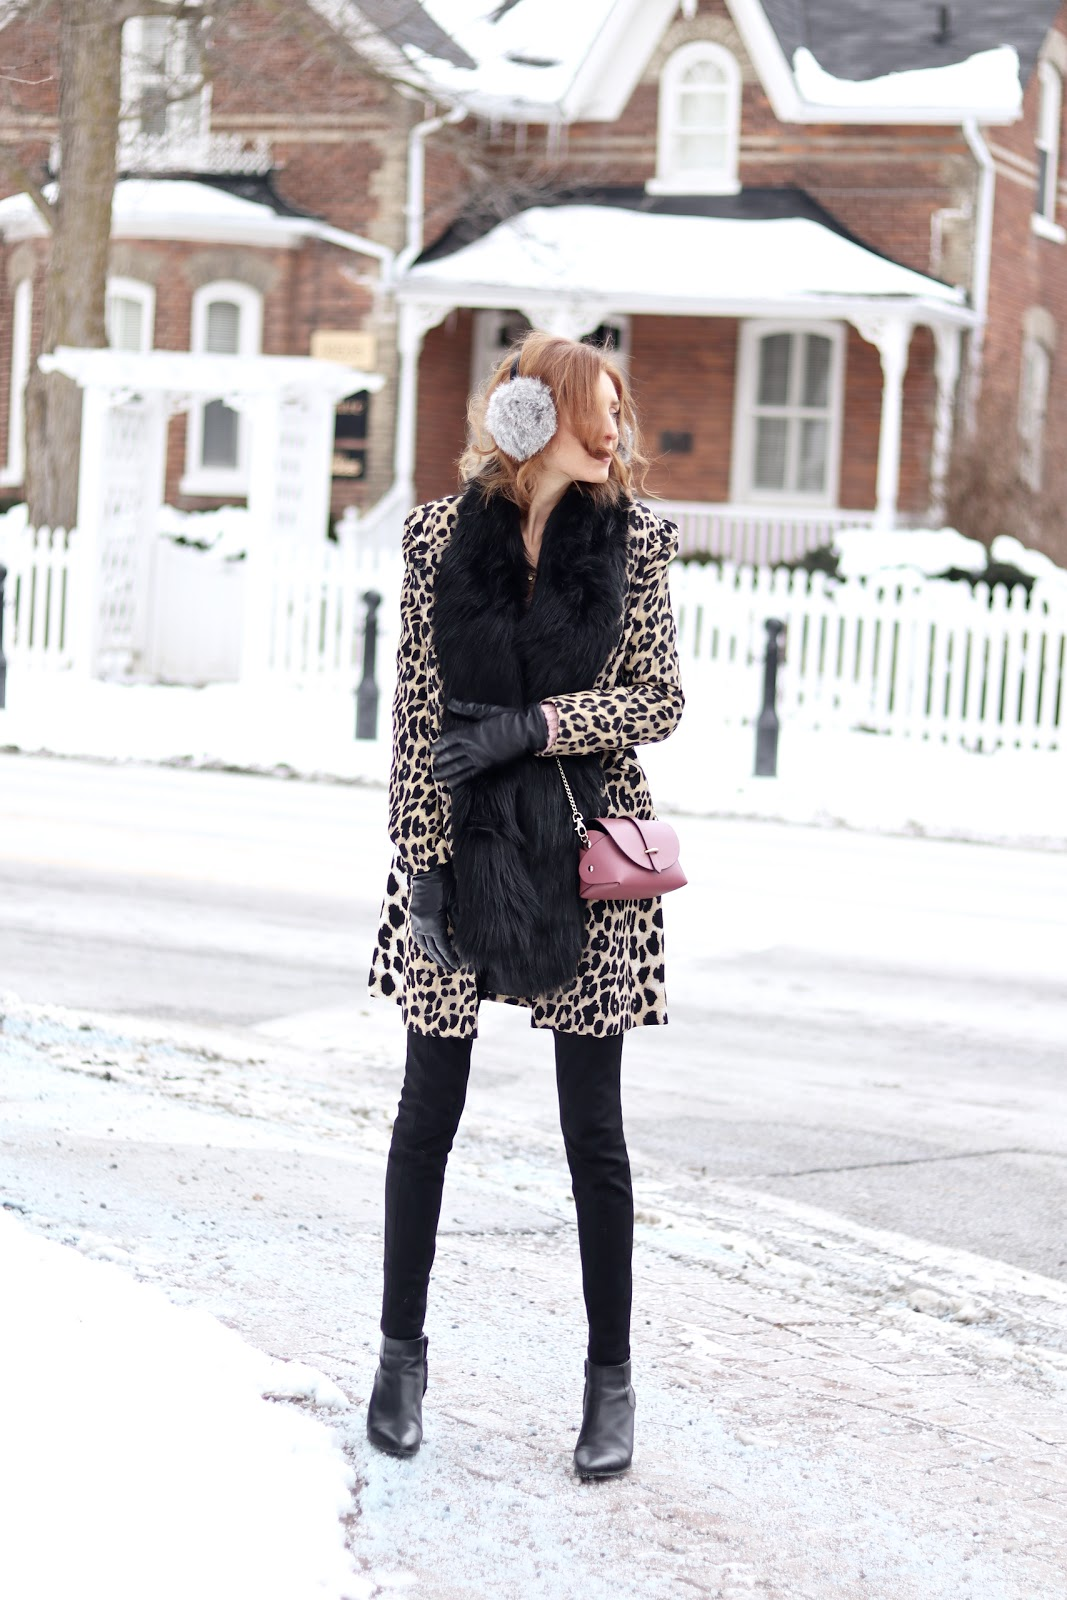 How to Wear Colour and Patterns in Winter- pink LOFT sweater, Leopard over coat, grey earmuffs, Topshop black boots